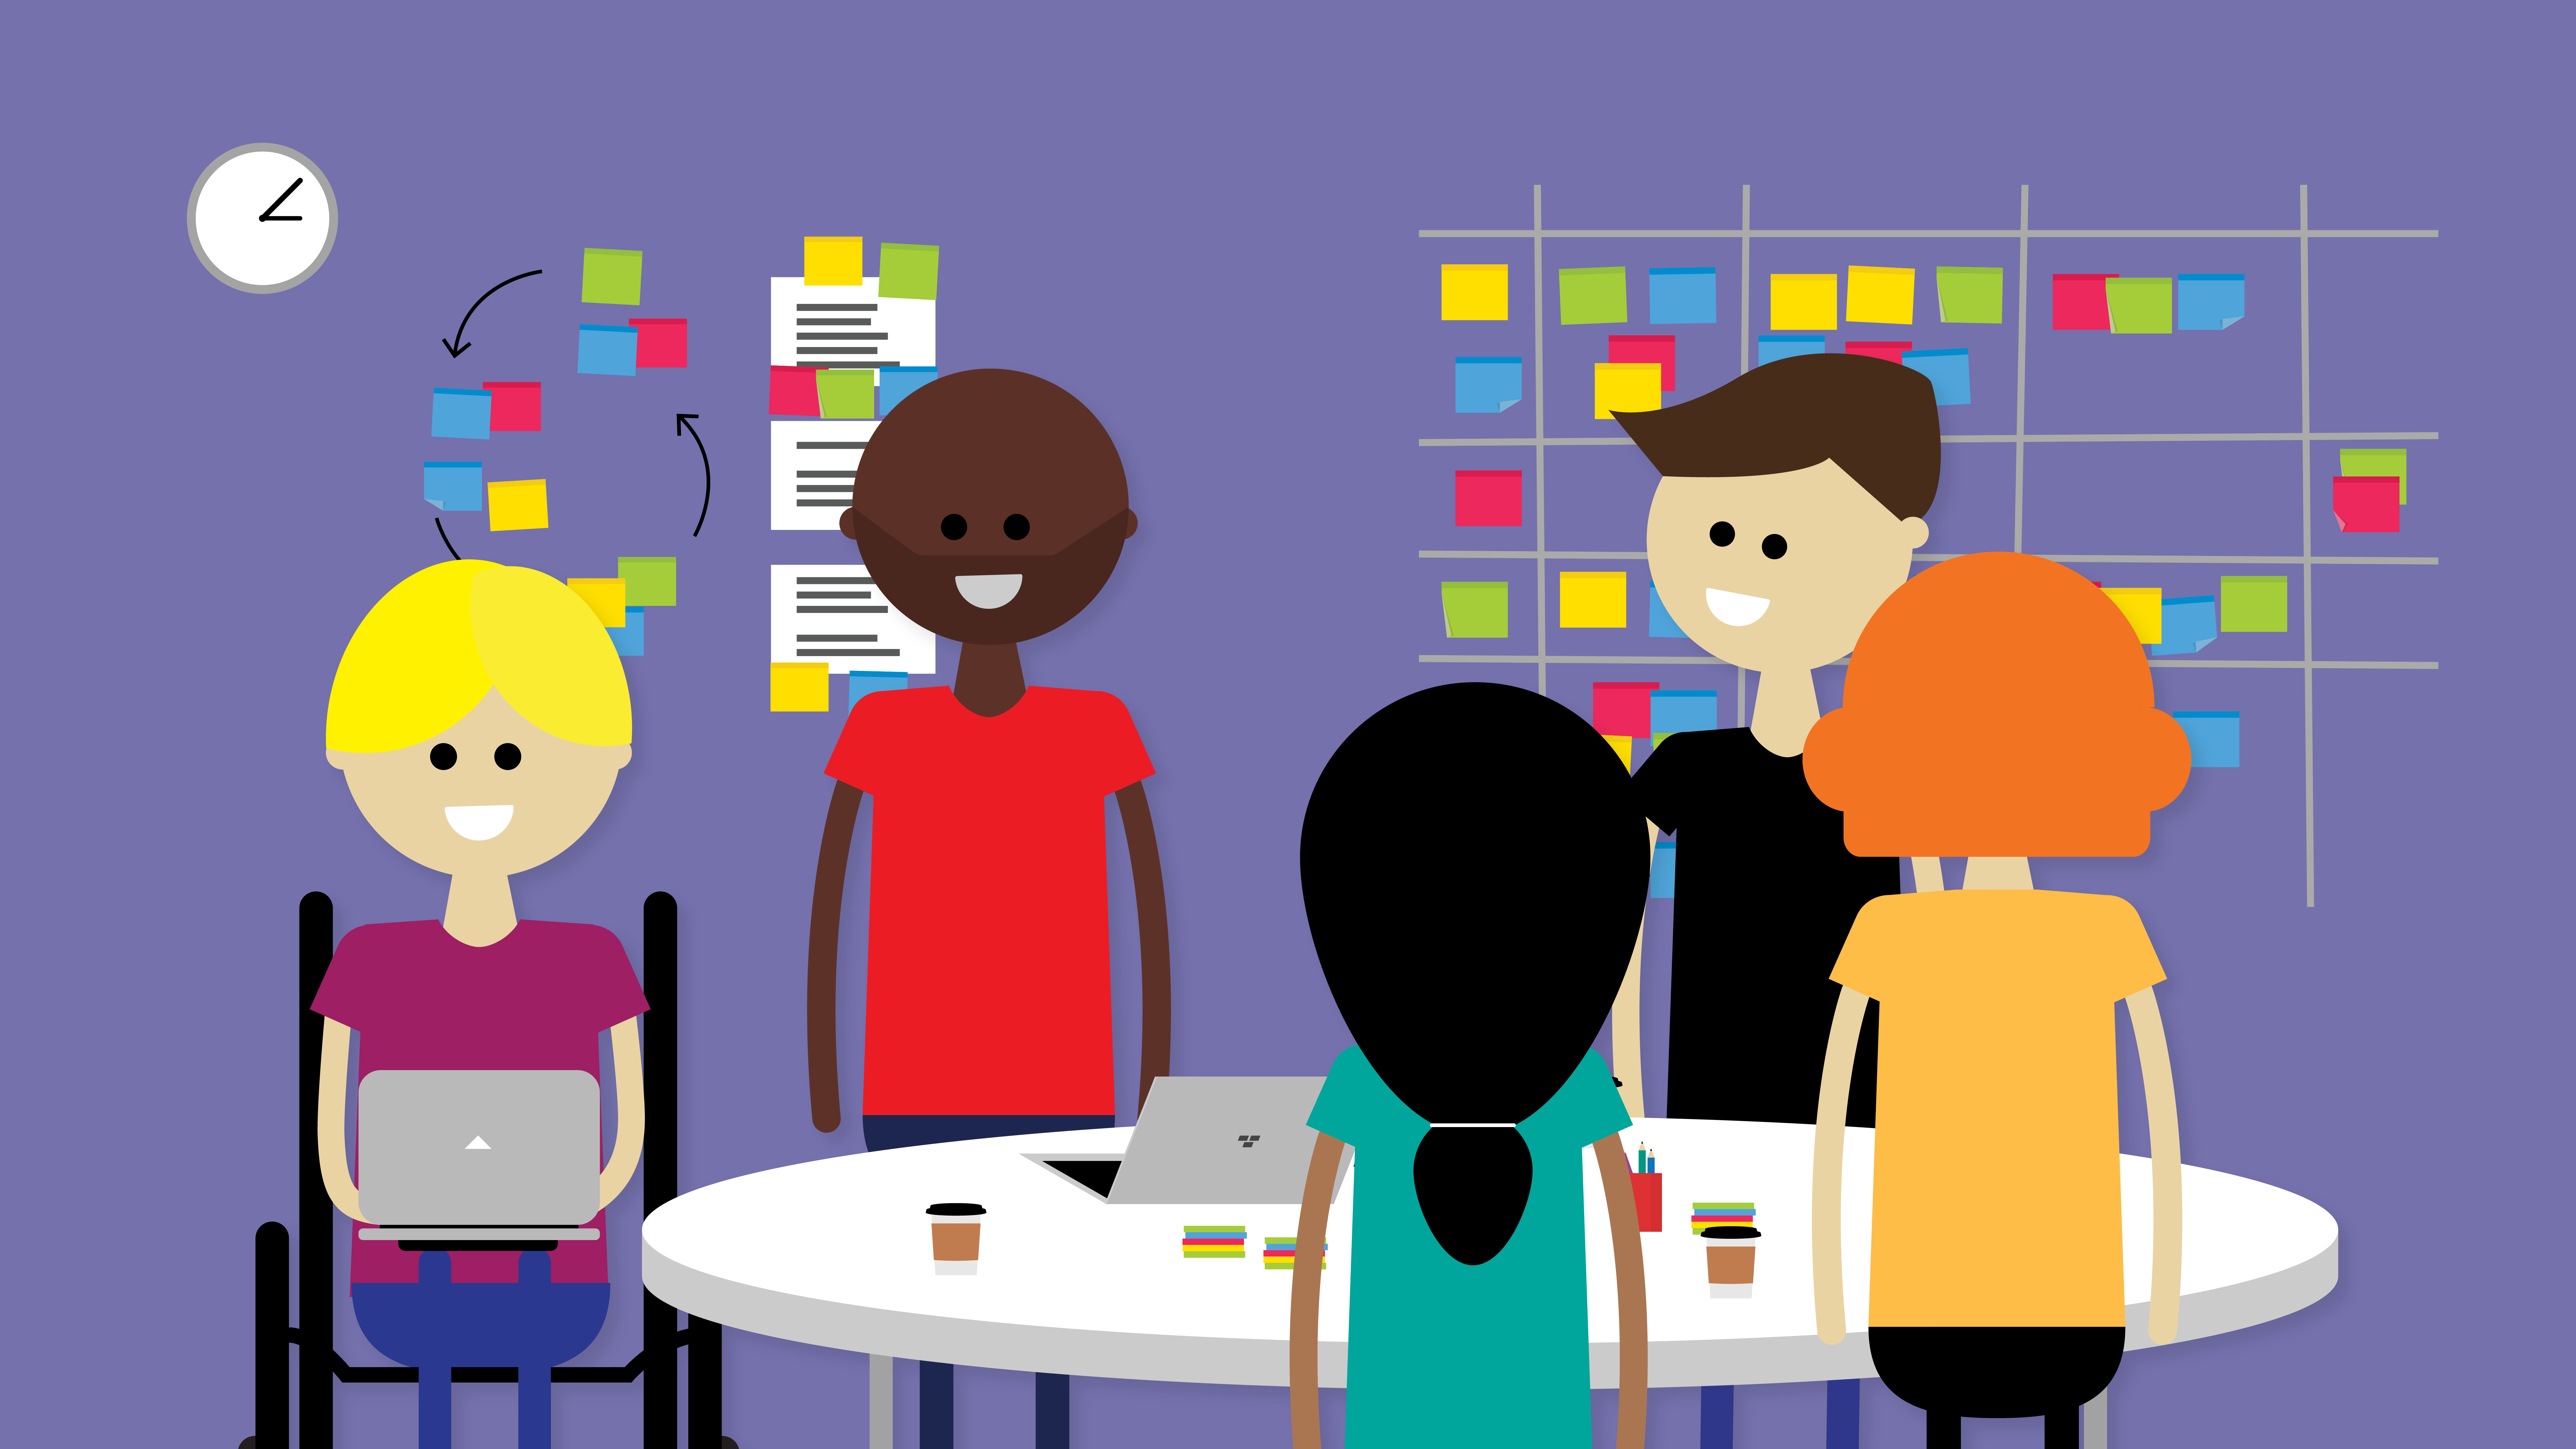 Graphic showing a team of people meeting in front of a wall of post-it notes